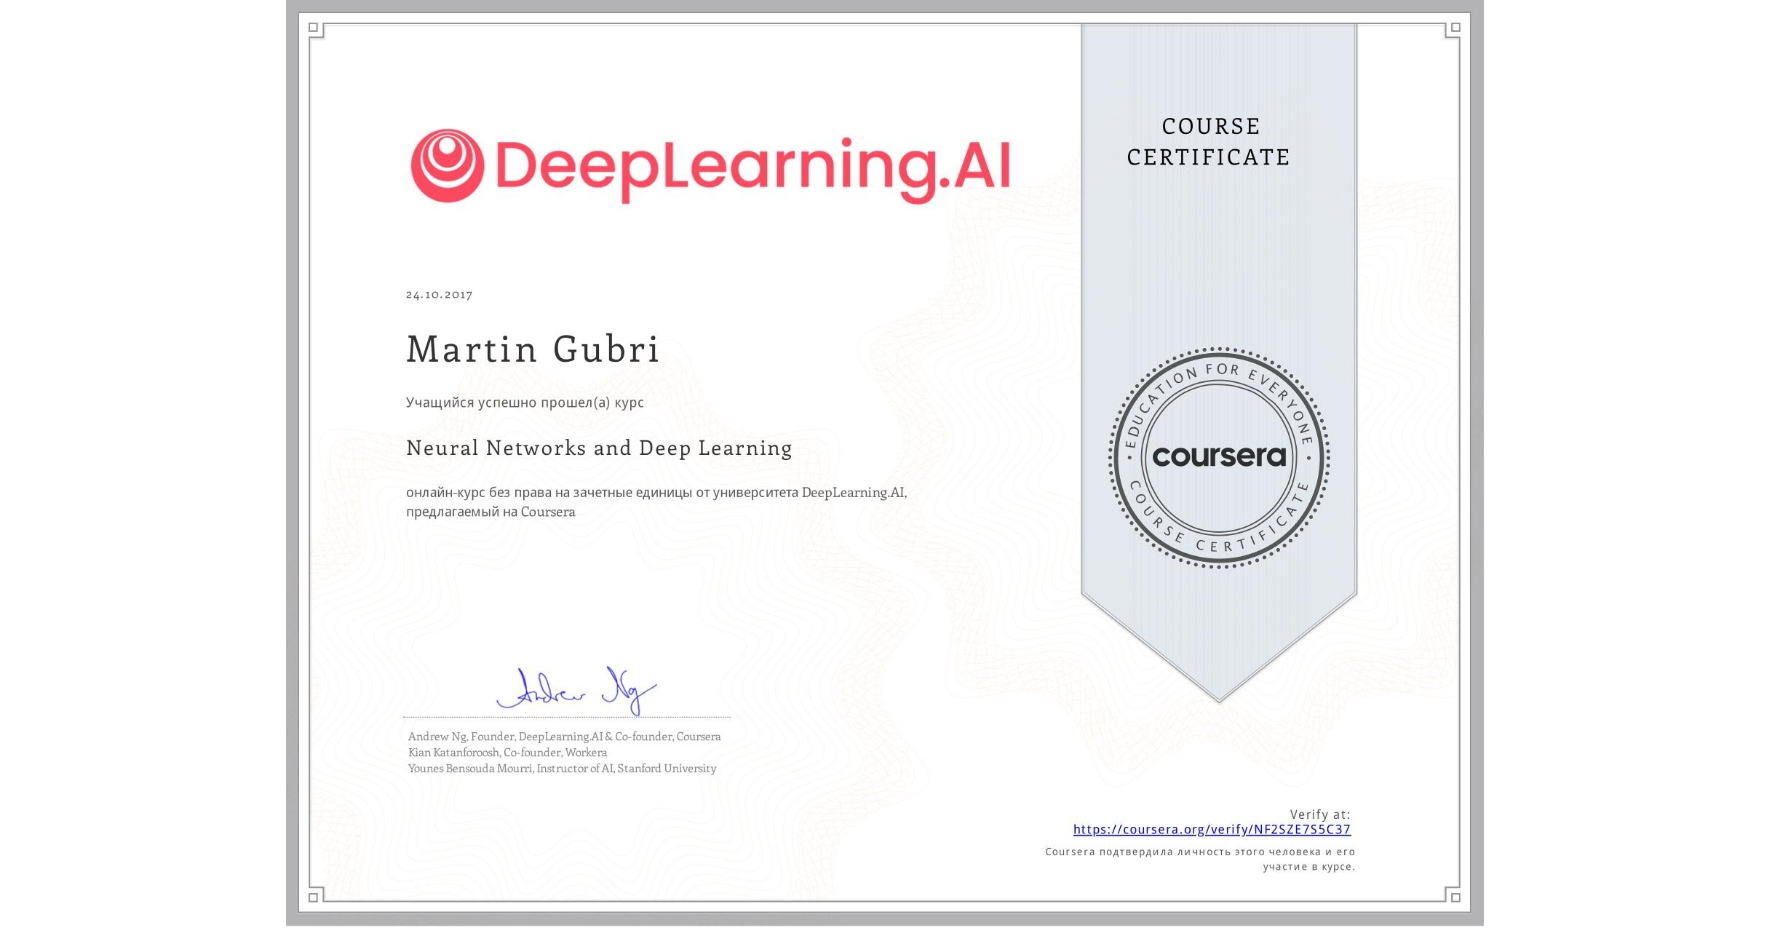 View certificate for Martin Gubri, Neural Networks and Deep Learning, an online non-credit course authorized by DeepLearning.AI and offered through Coursera